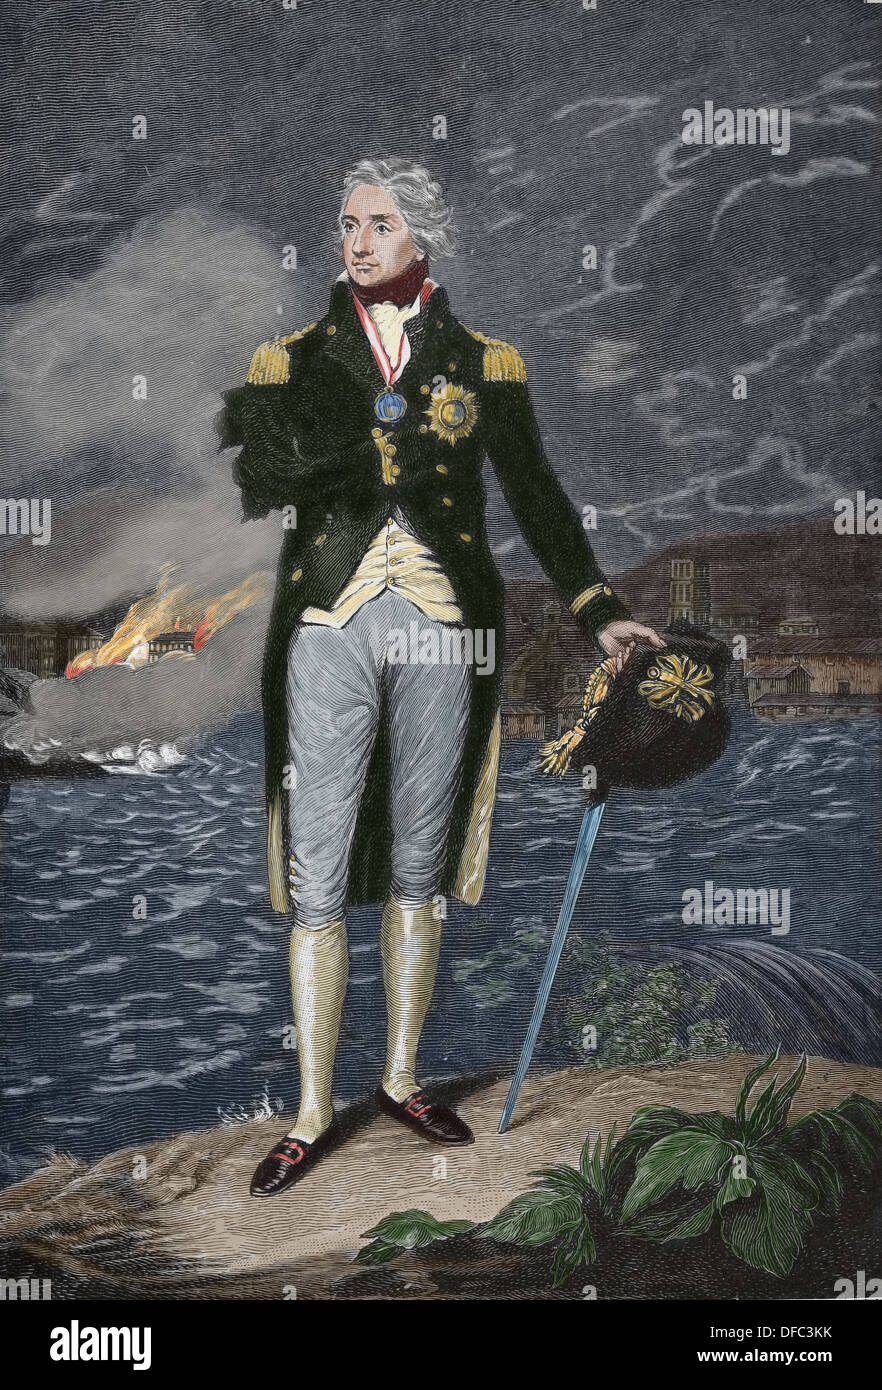 Horatio Nelson (1758 – 1805). British flag officer famous for his service in the Royal Navy. Engraving. - Stock Image